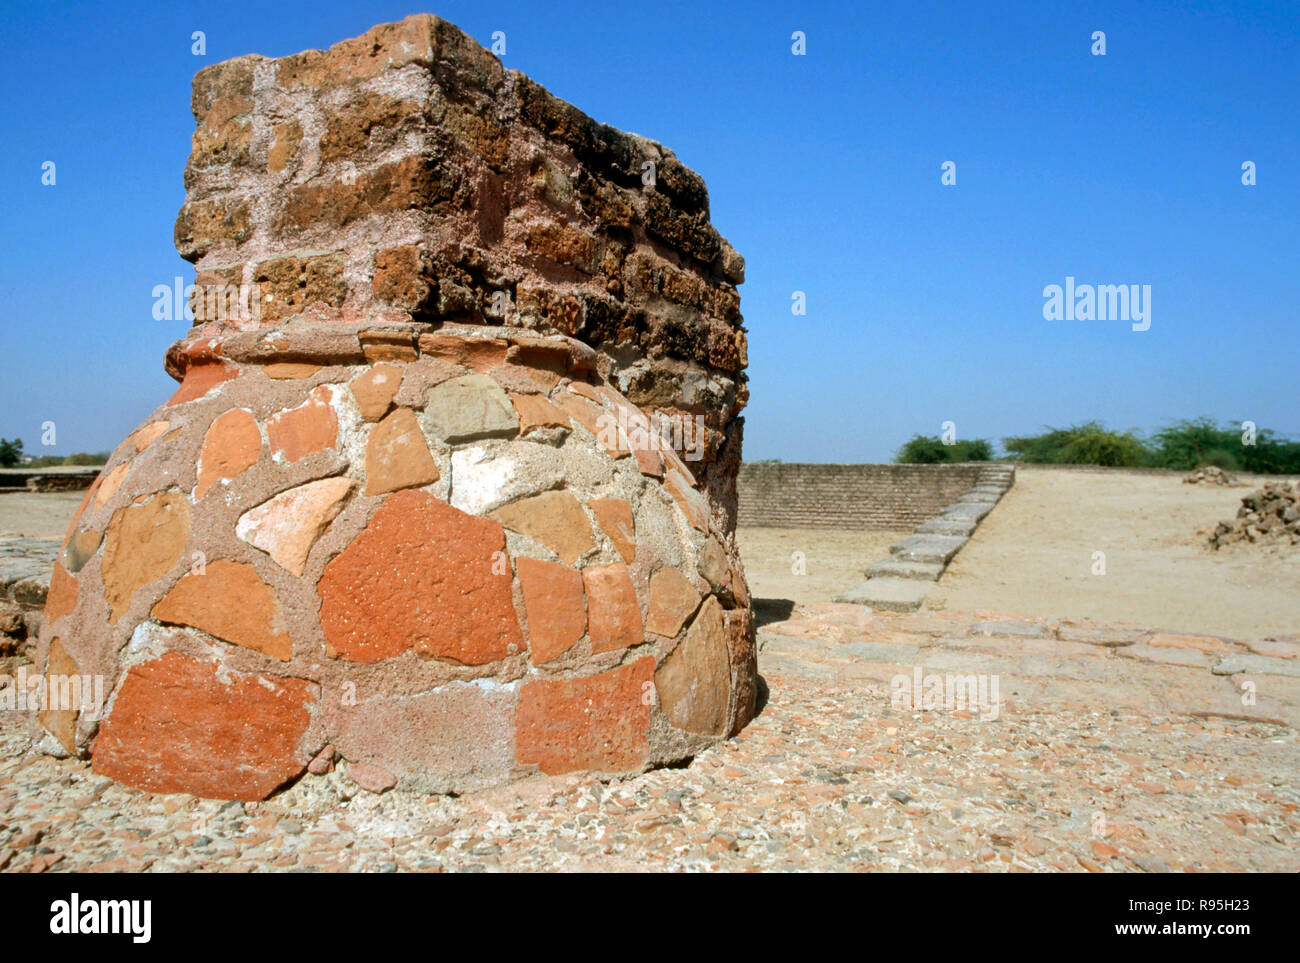 Indus (Harappa) Civilization Period - 2300 to 1700 B.C., Lothal, Gujarat, India - Stock Image